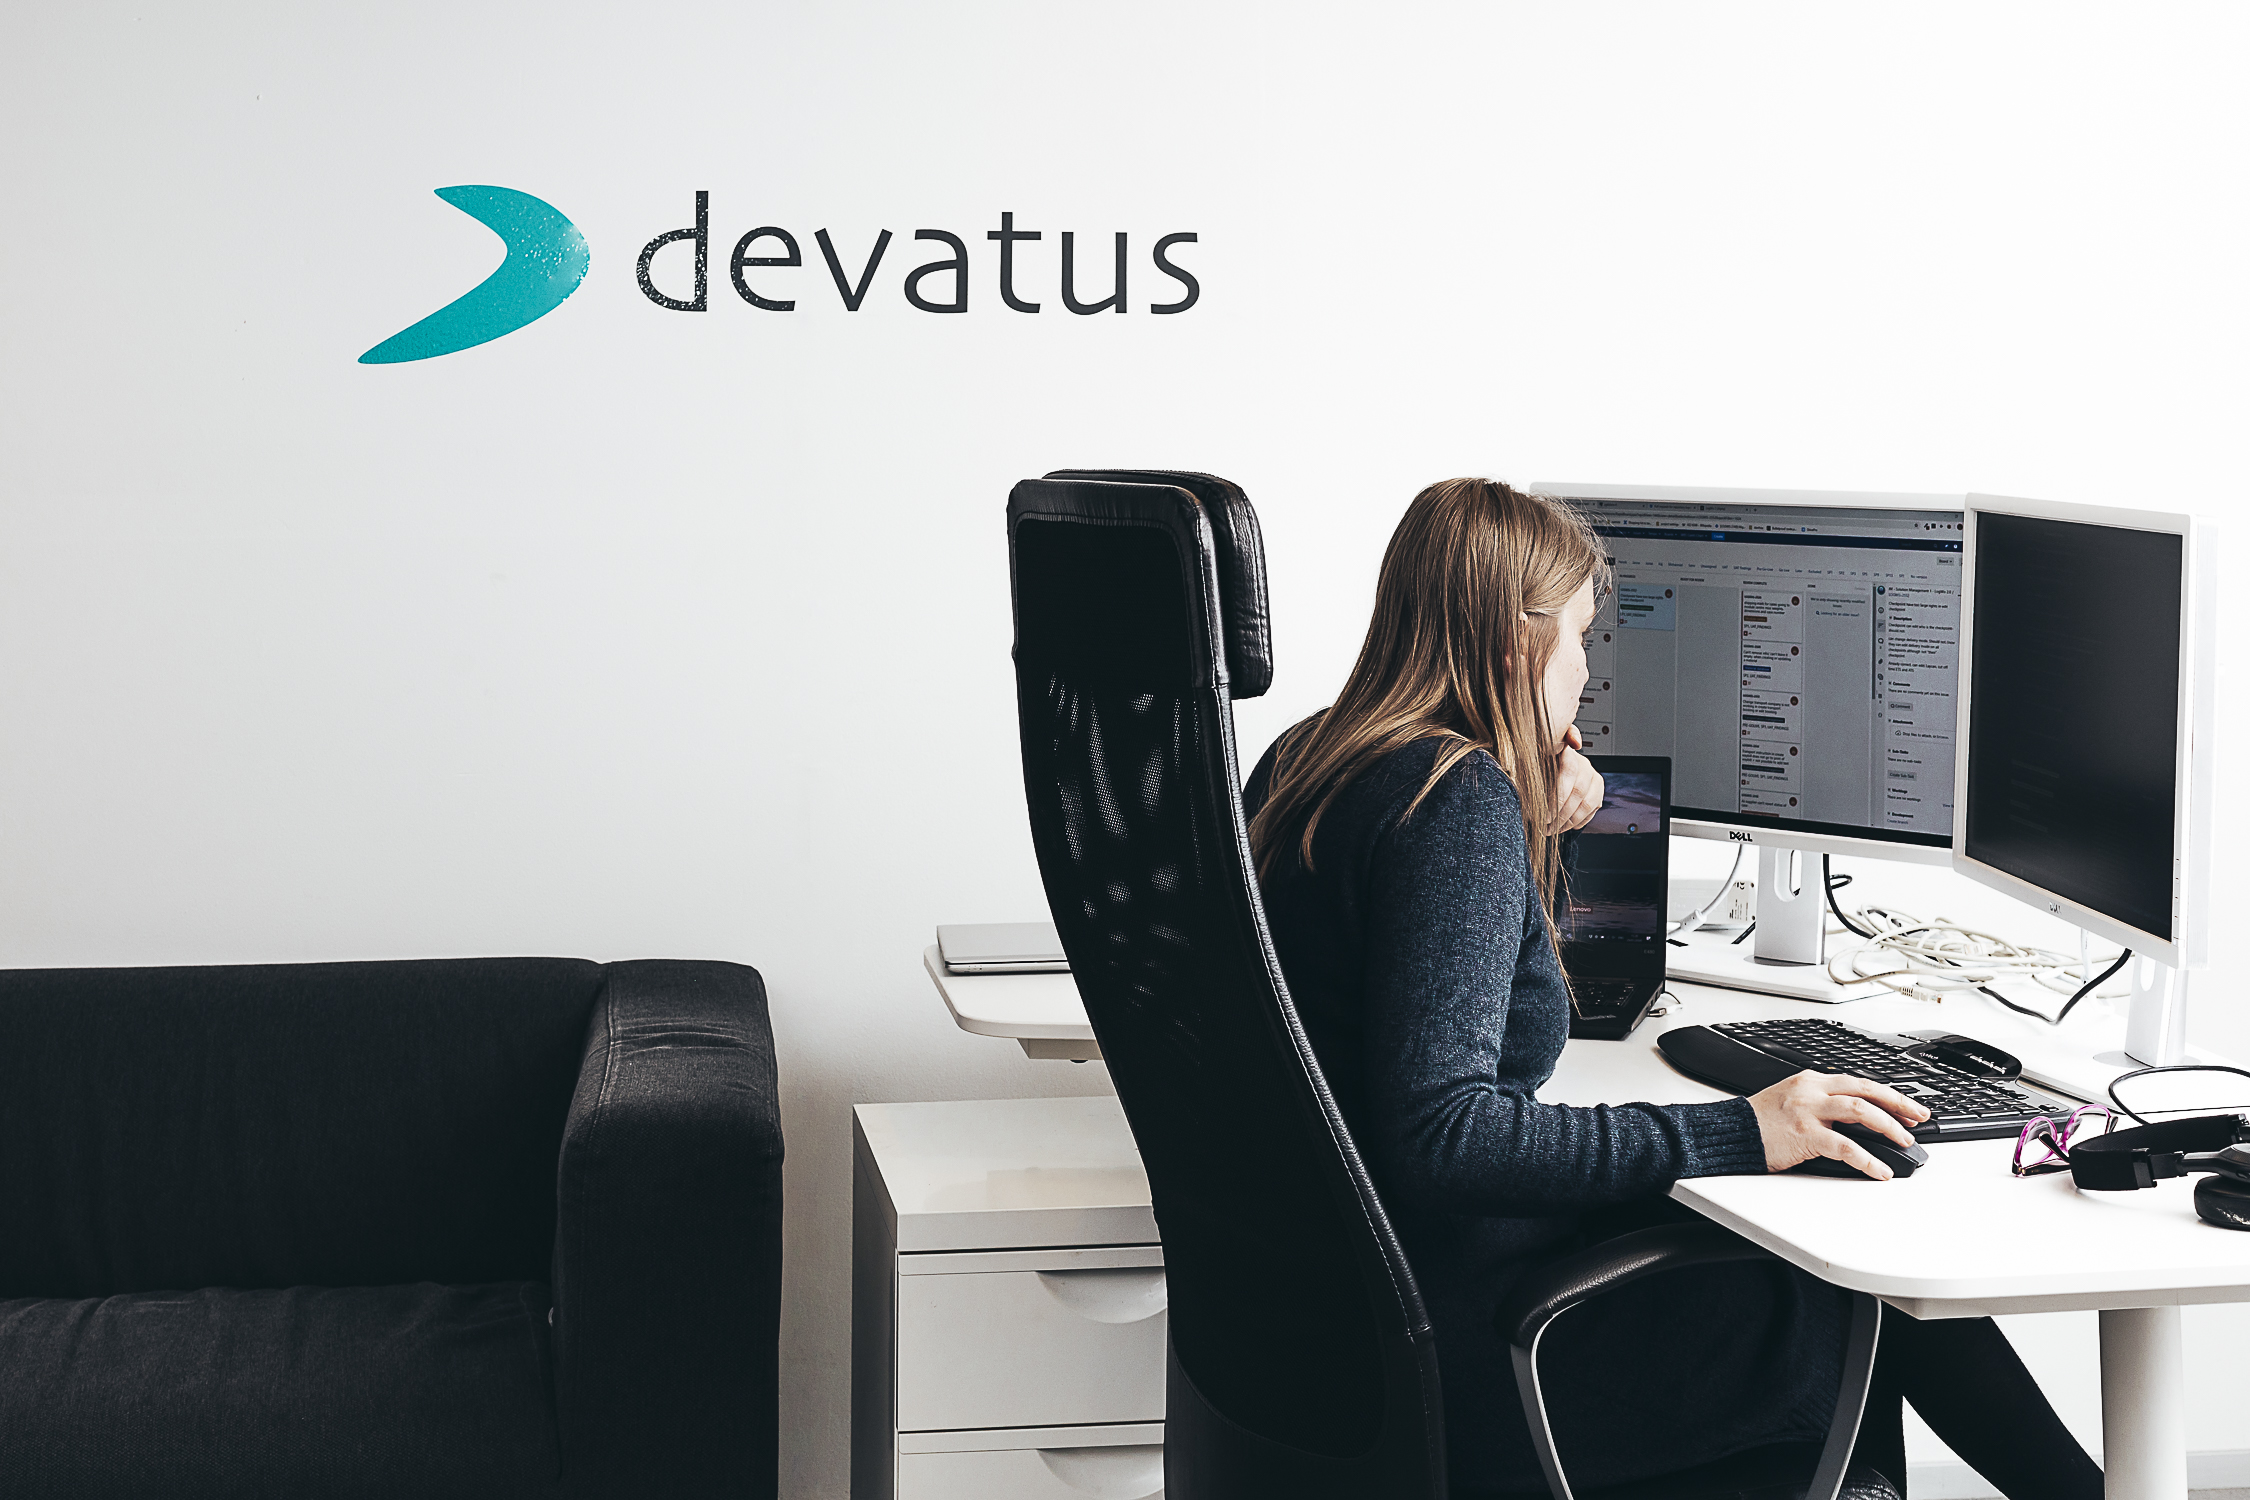 Devatus developing digital Services